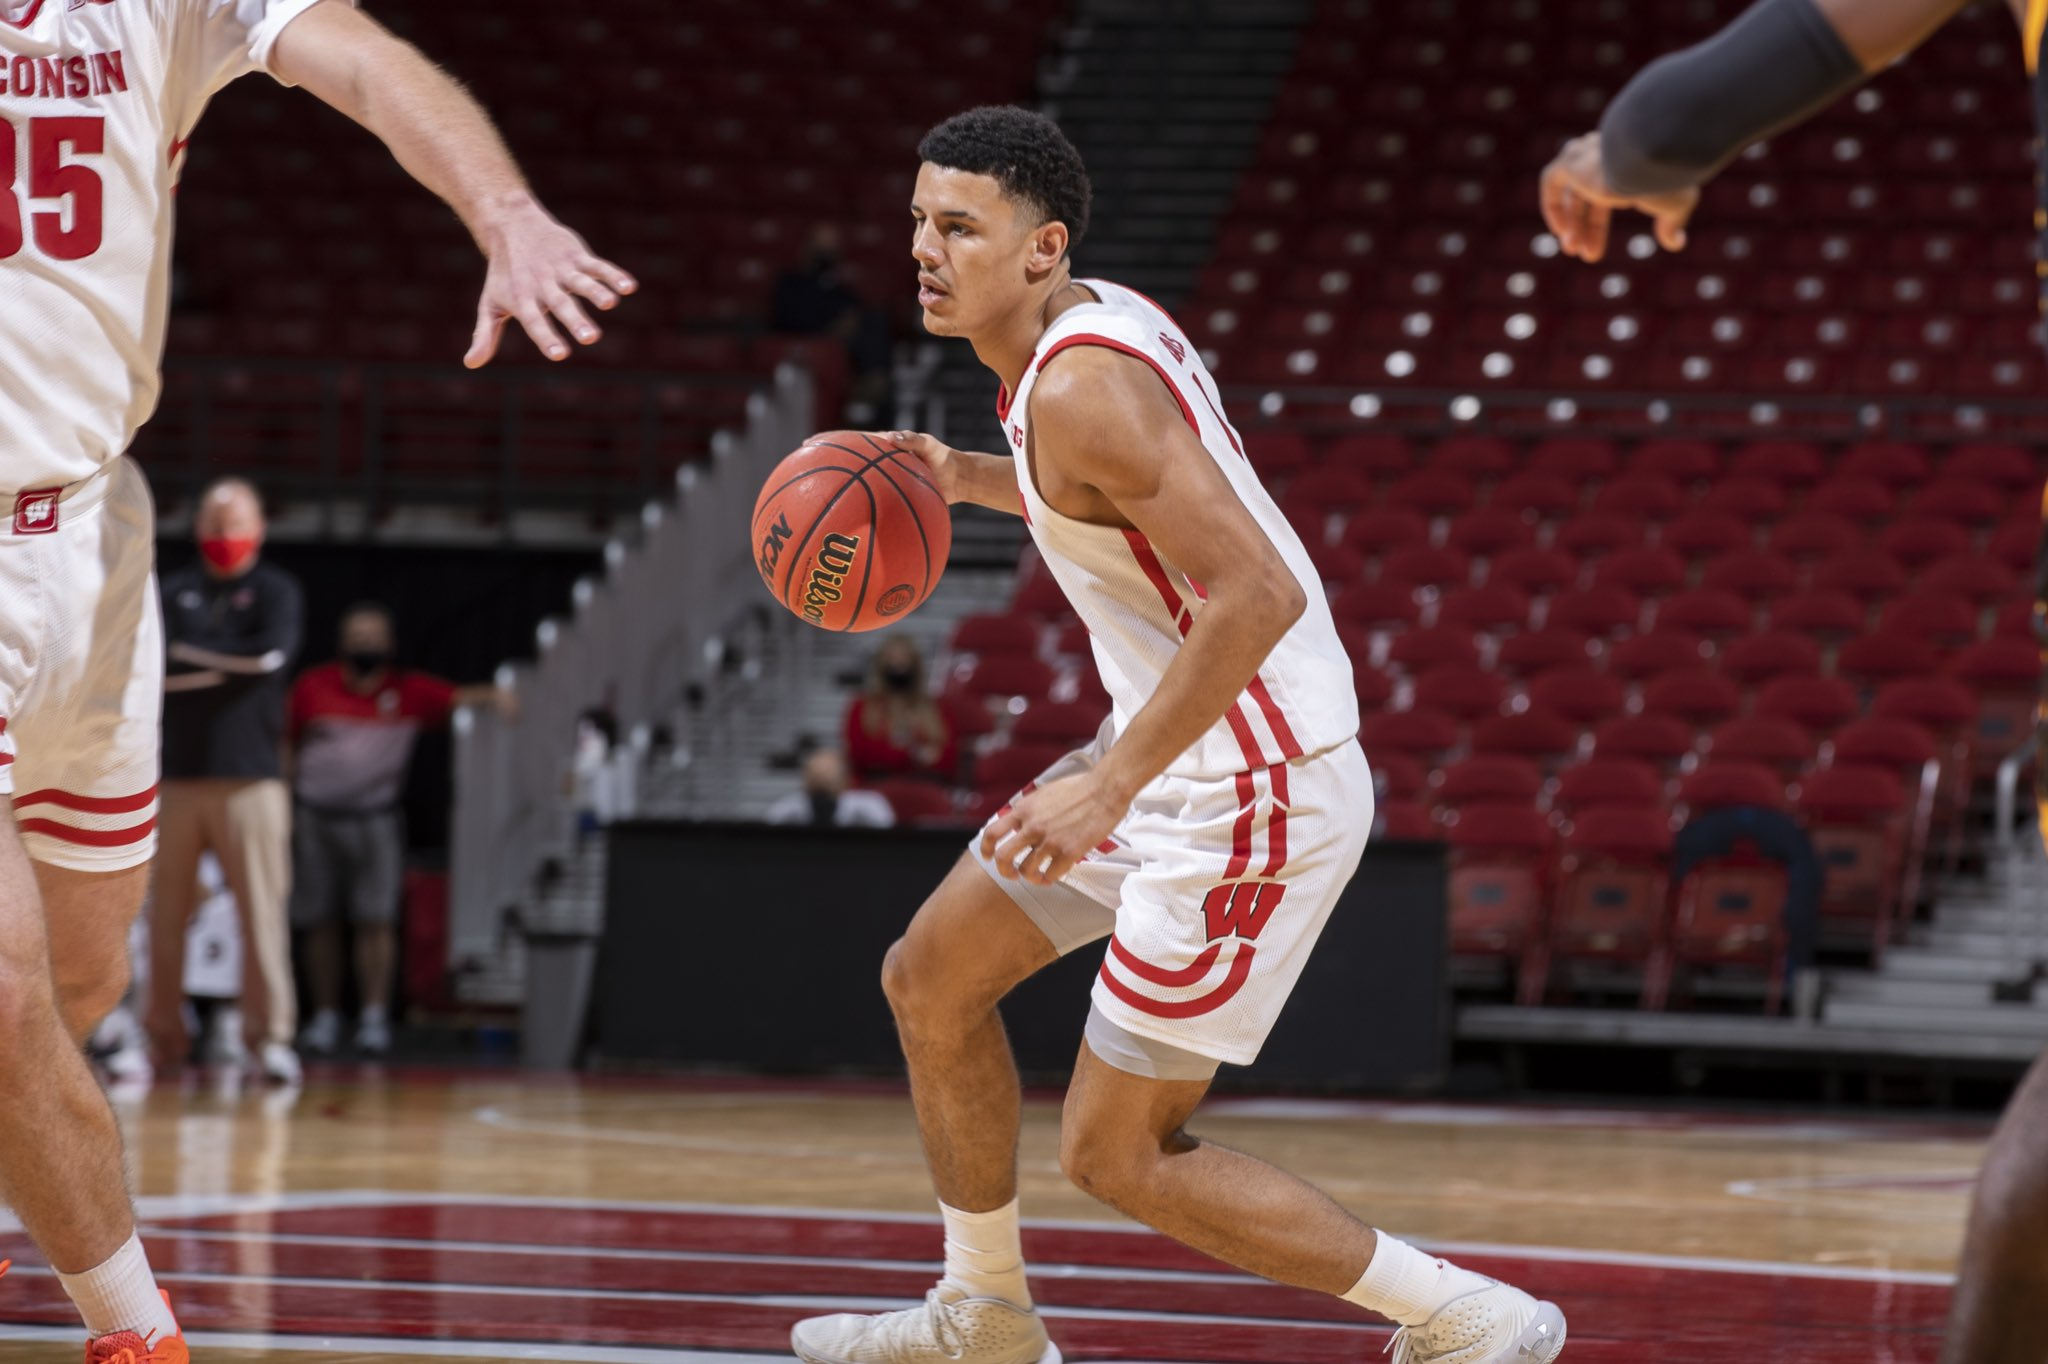 Badgers look to get back at Maryland after upset loss last time out